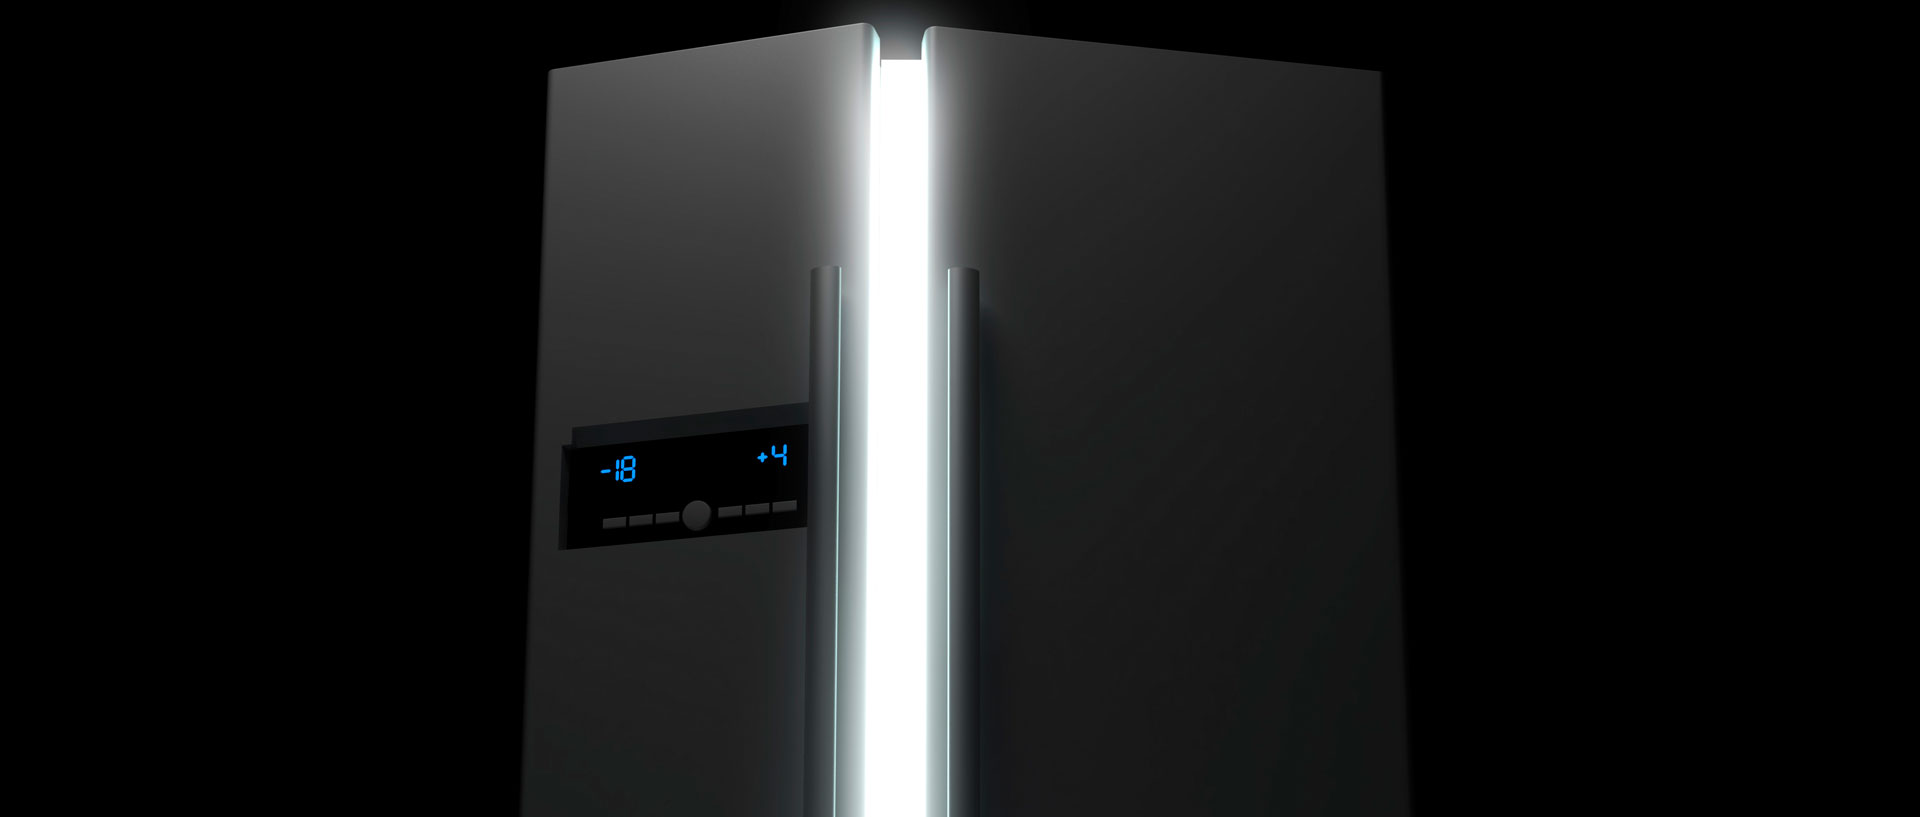 5 Cool Refrigerator Features Worth A Look Consumer Reports